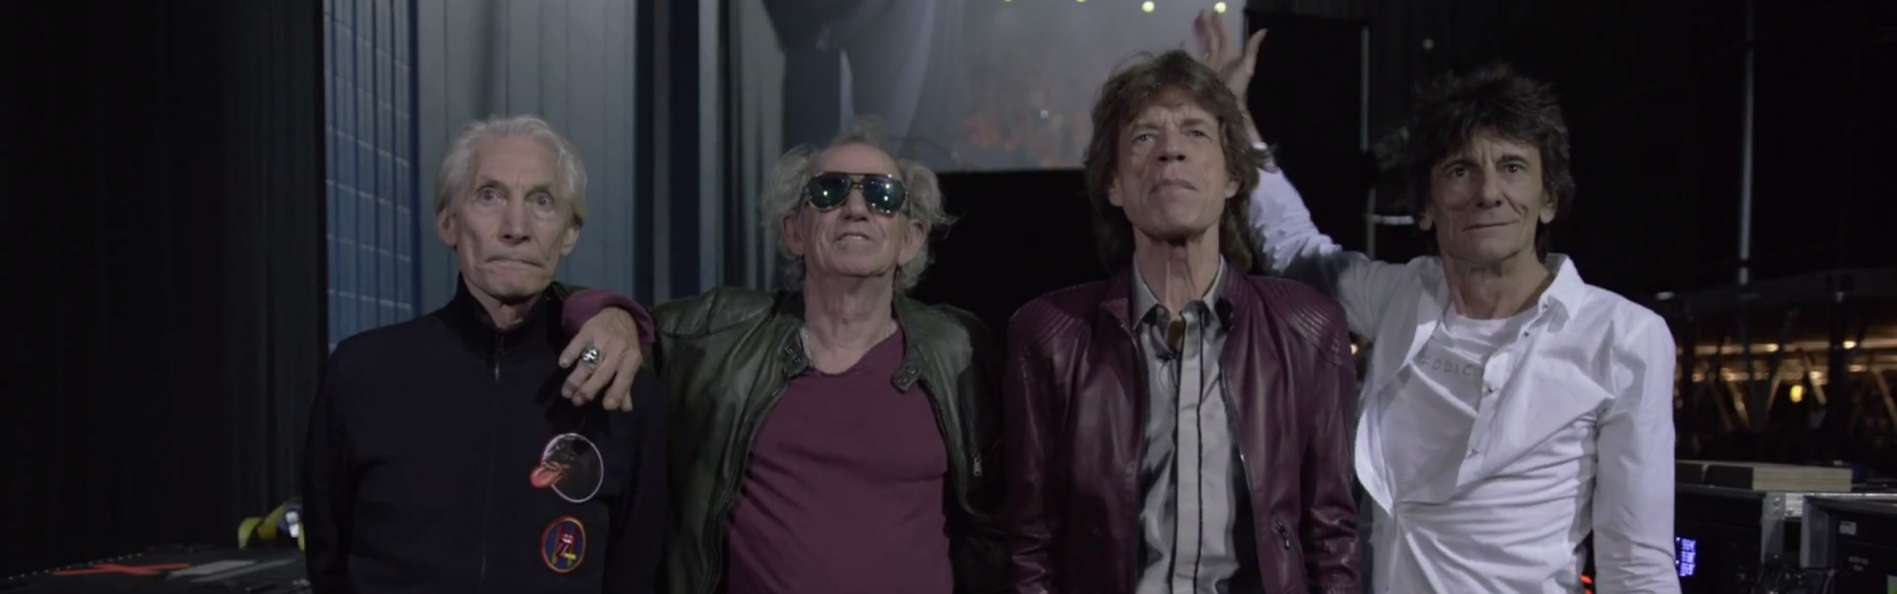 Rolling Stones Foto: The Rolling Stones